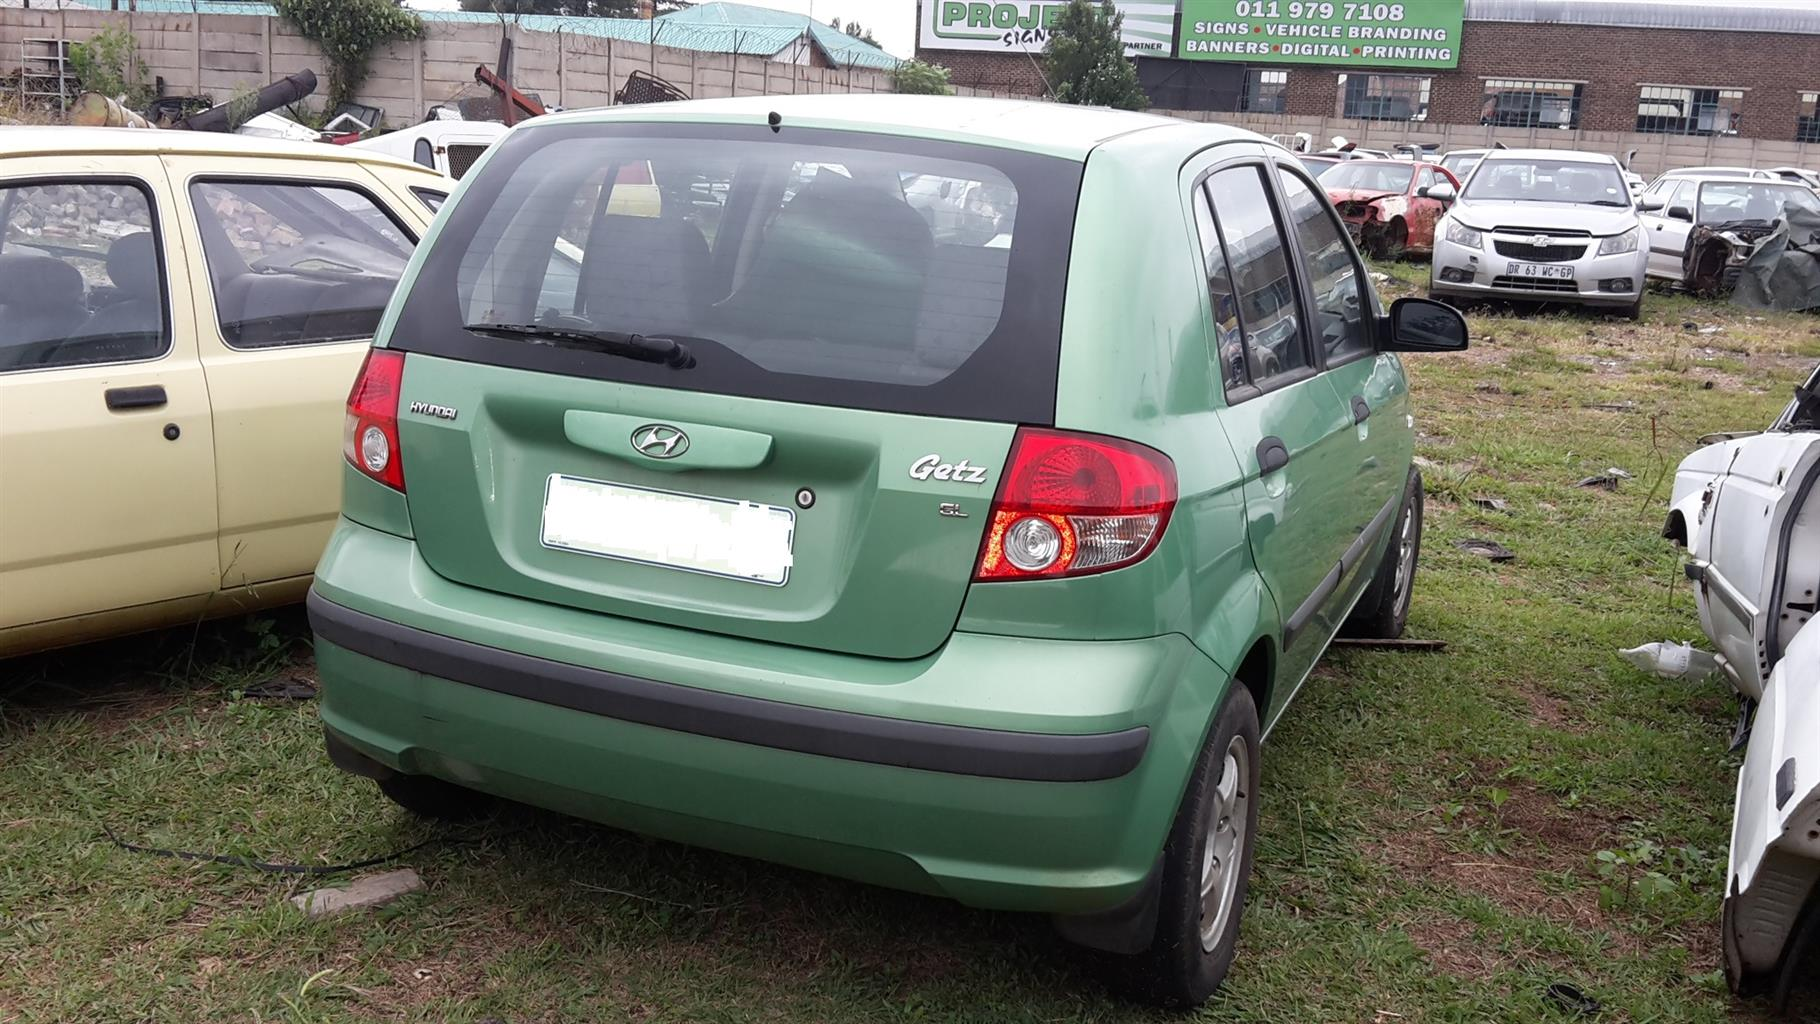 2004/5 Hyundai Getz stripping for spare parts | Junk Mail